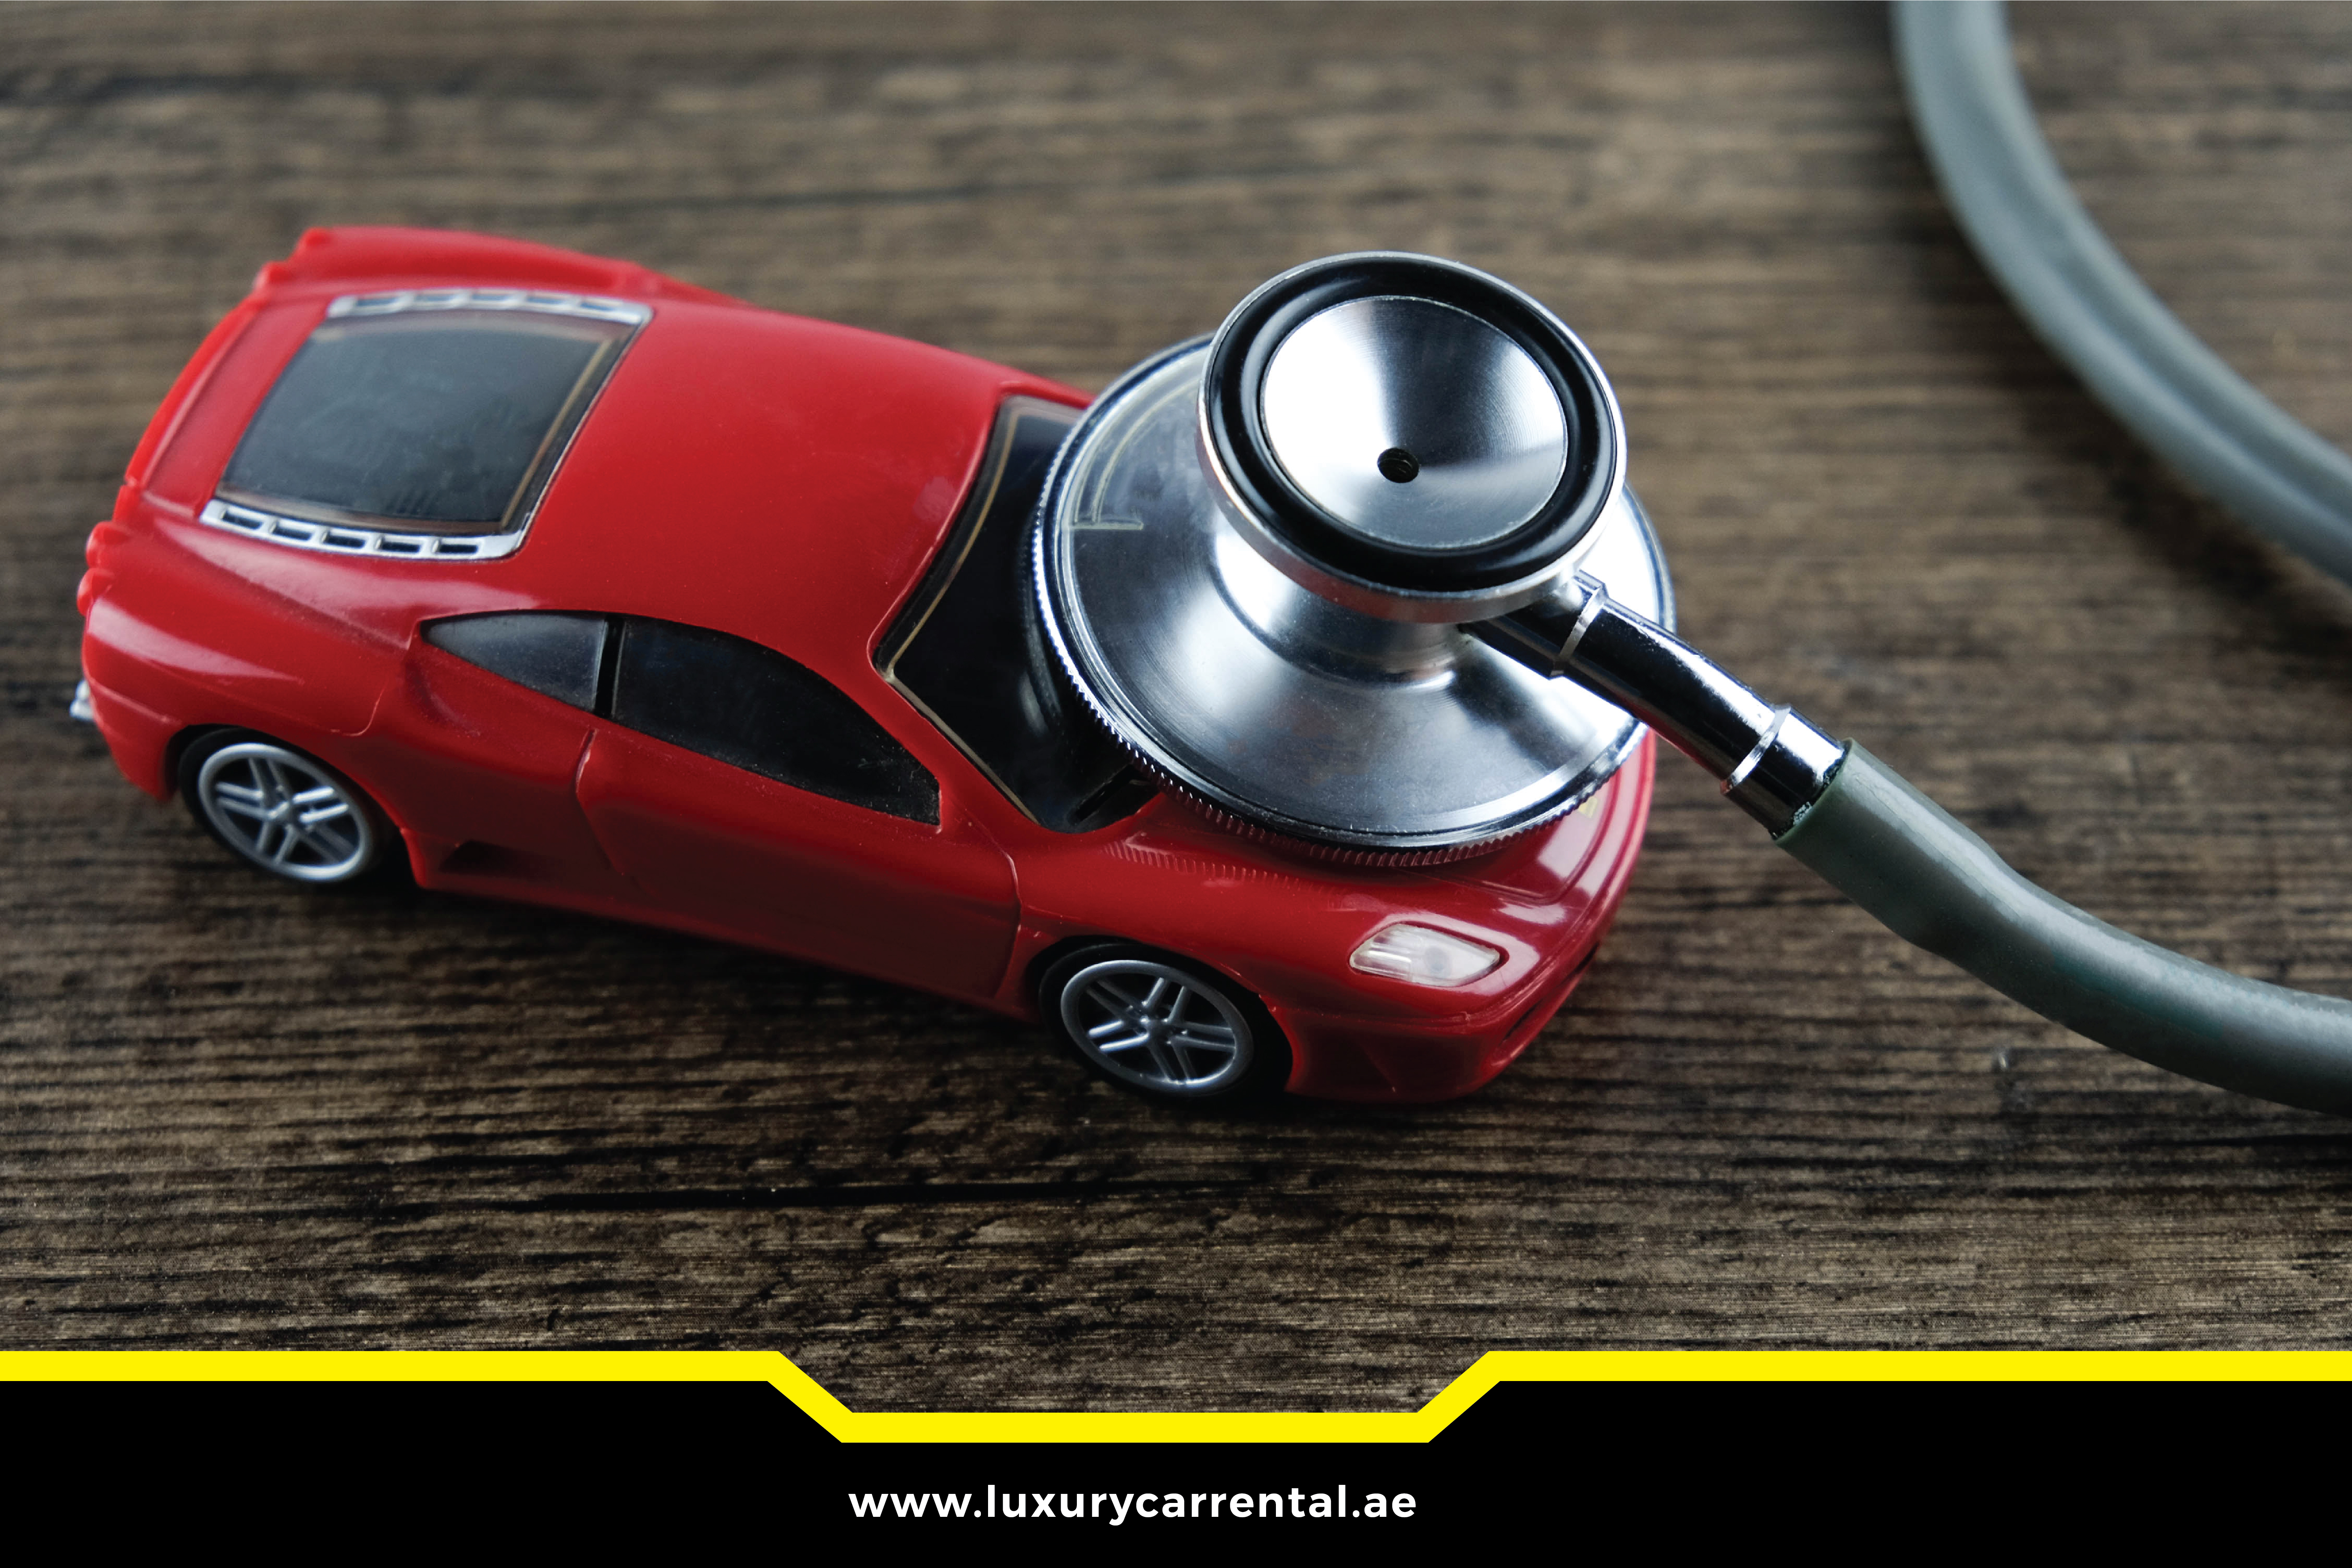 UAE Rental Cars Insurance-Everything You Need to Know